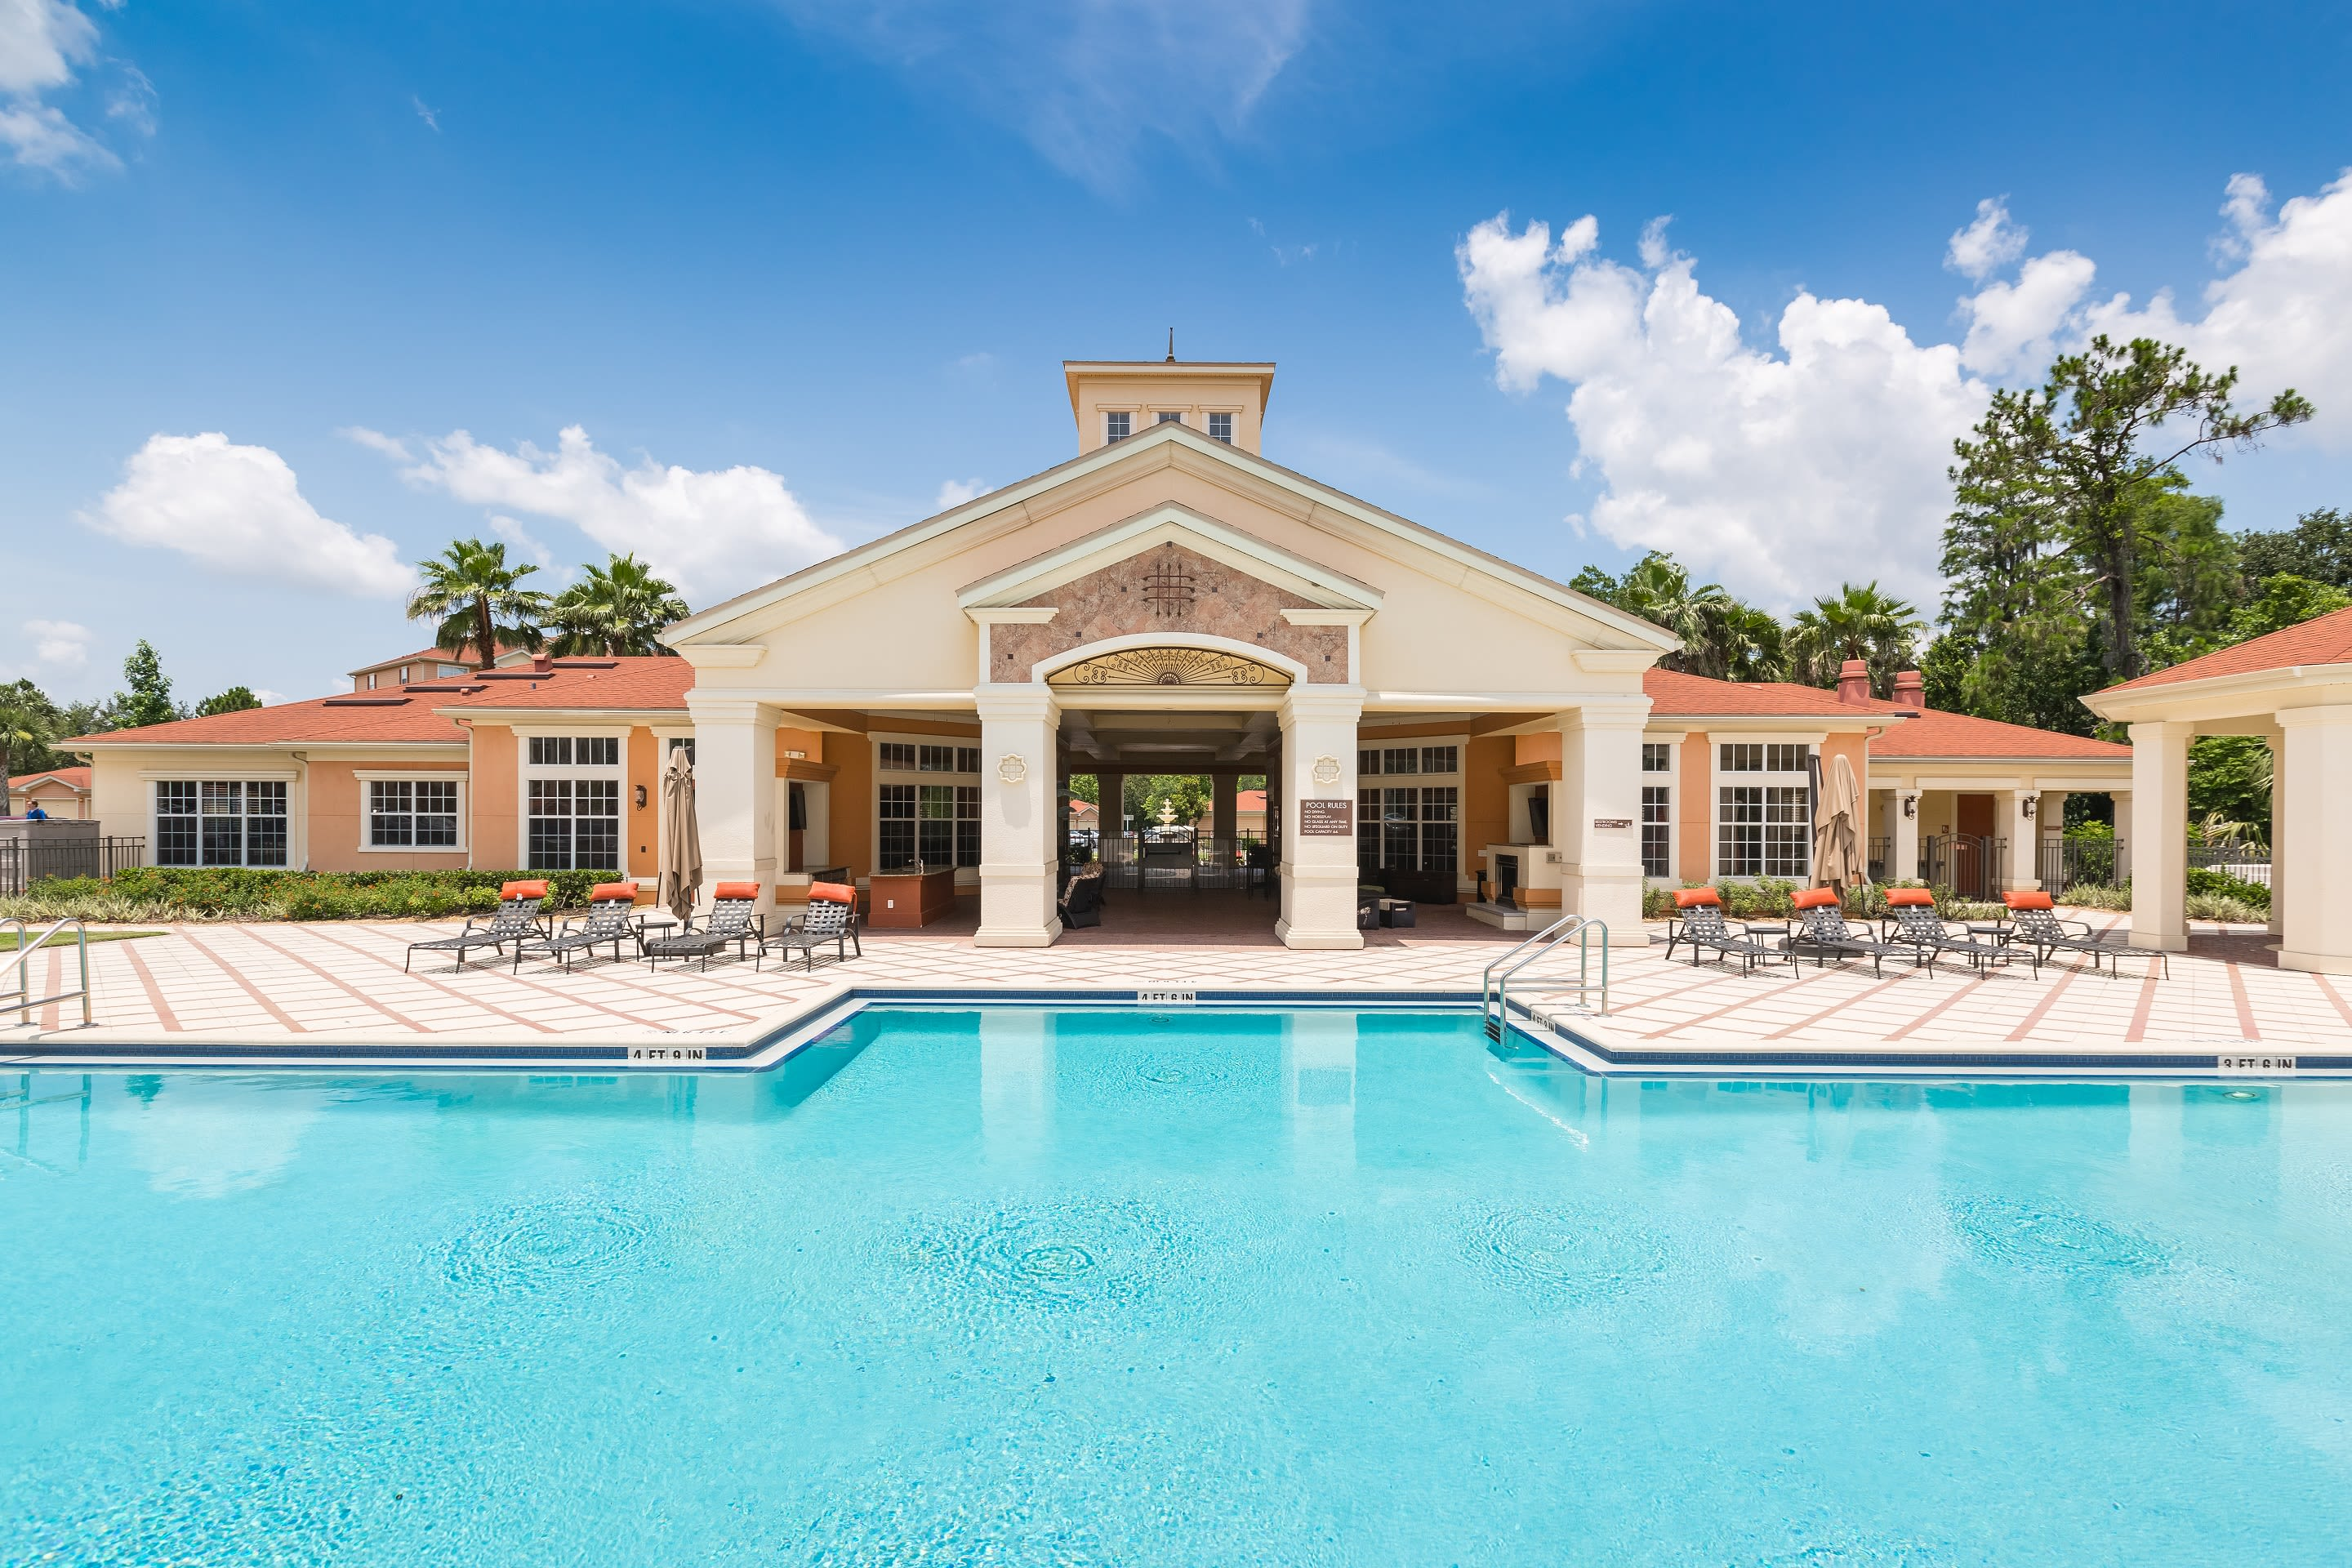 The Aspect resort style pool in Kissimmee, Florida